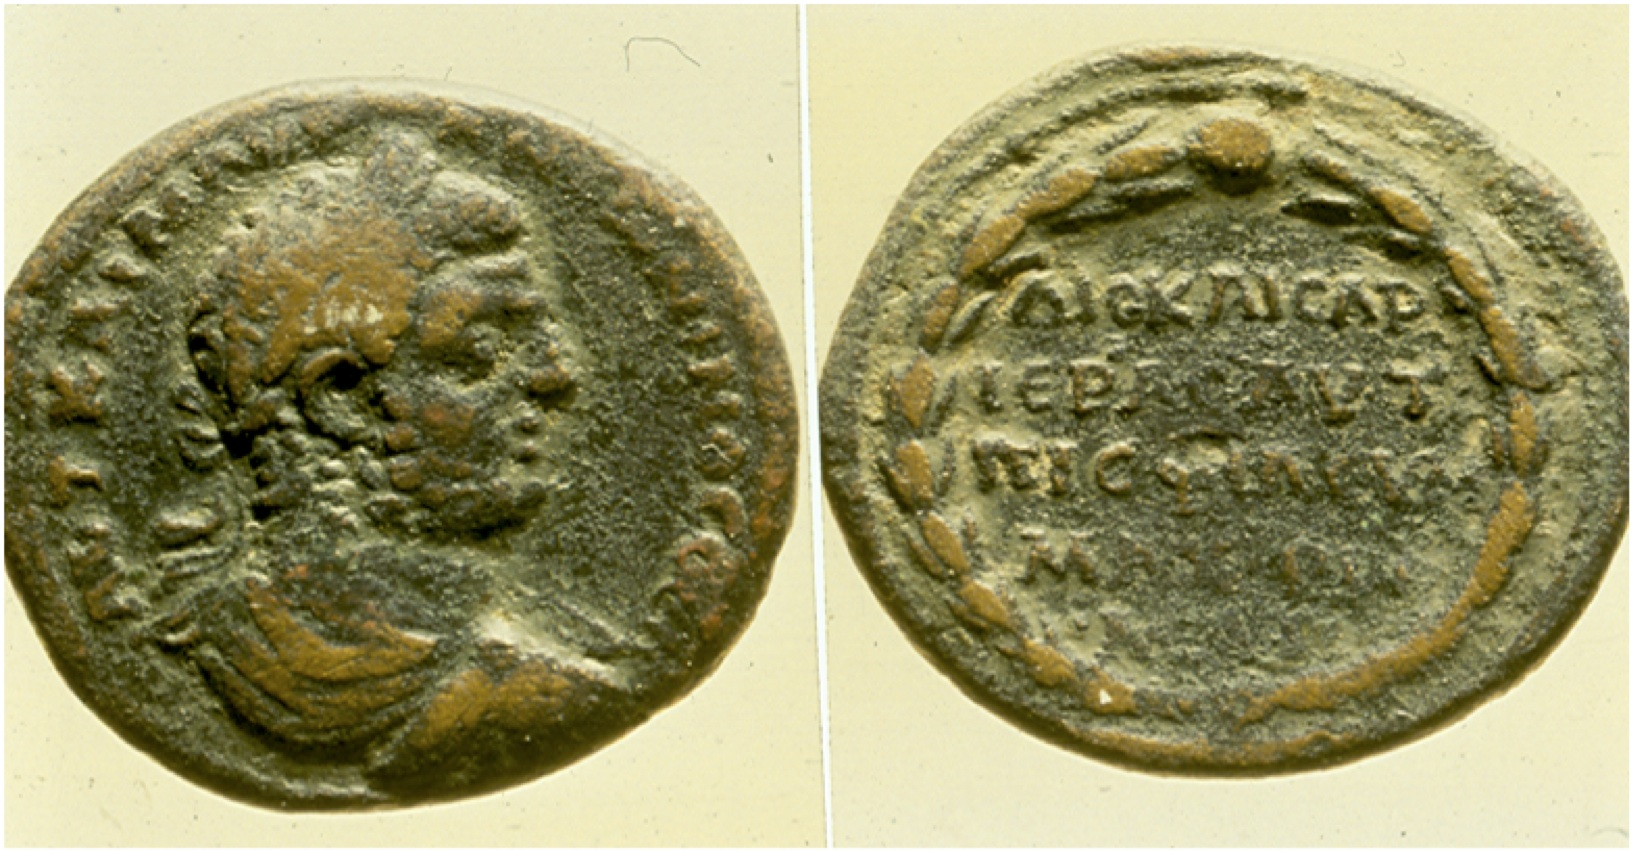 Medallion minted by Sepphoris celebrating the friendship with the emperor Caracalla (211-217 CE)